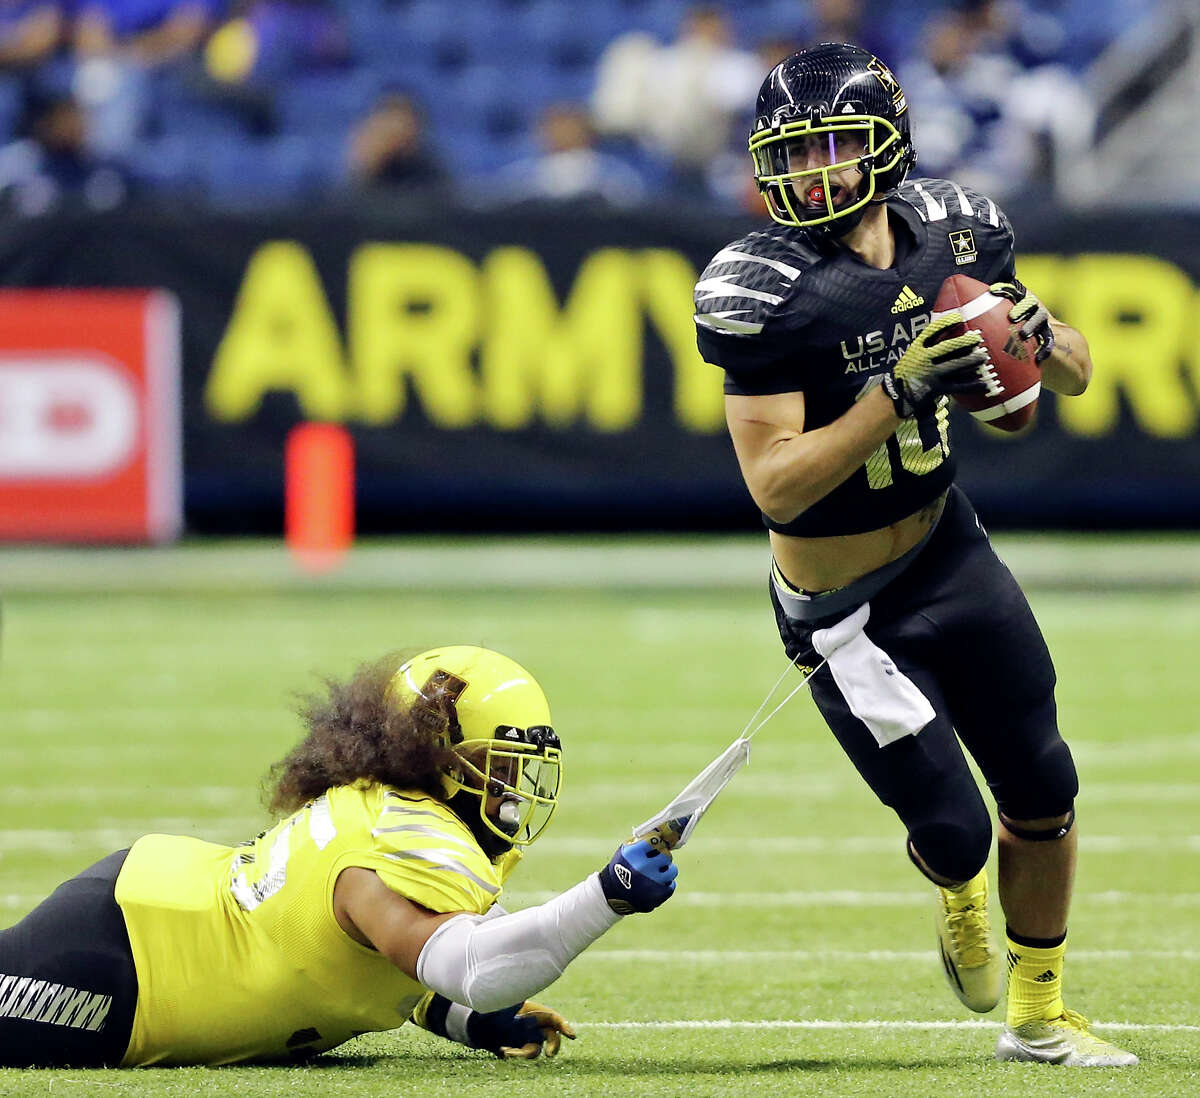 West's Ainuu Taua tries to tackle East's Jacob Park during second half action of the U.S. Army All-American Bowl Saturday Jan. 4, 2014 at the Alamodome. The West won 28-6.